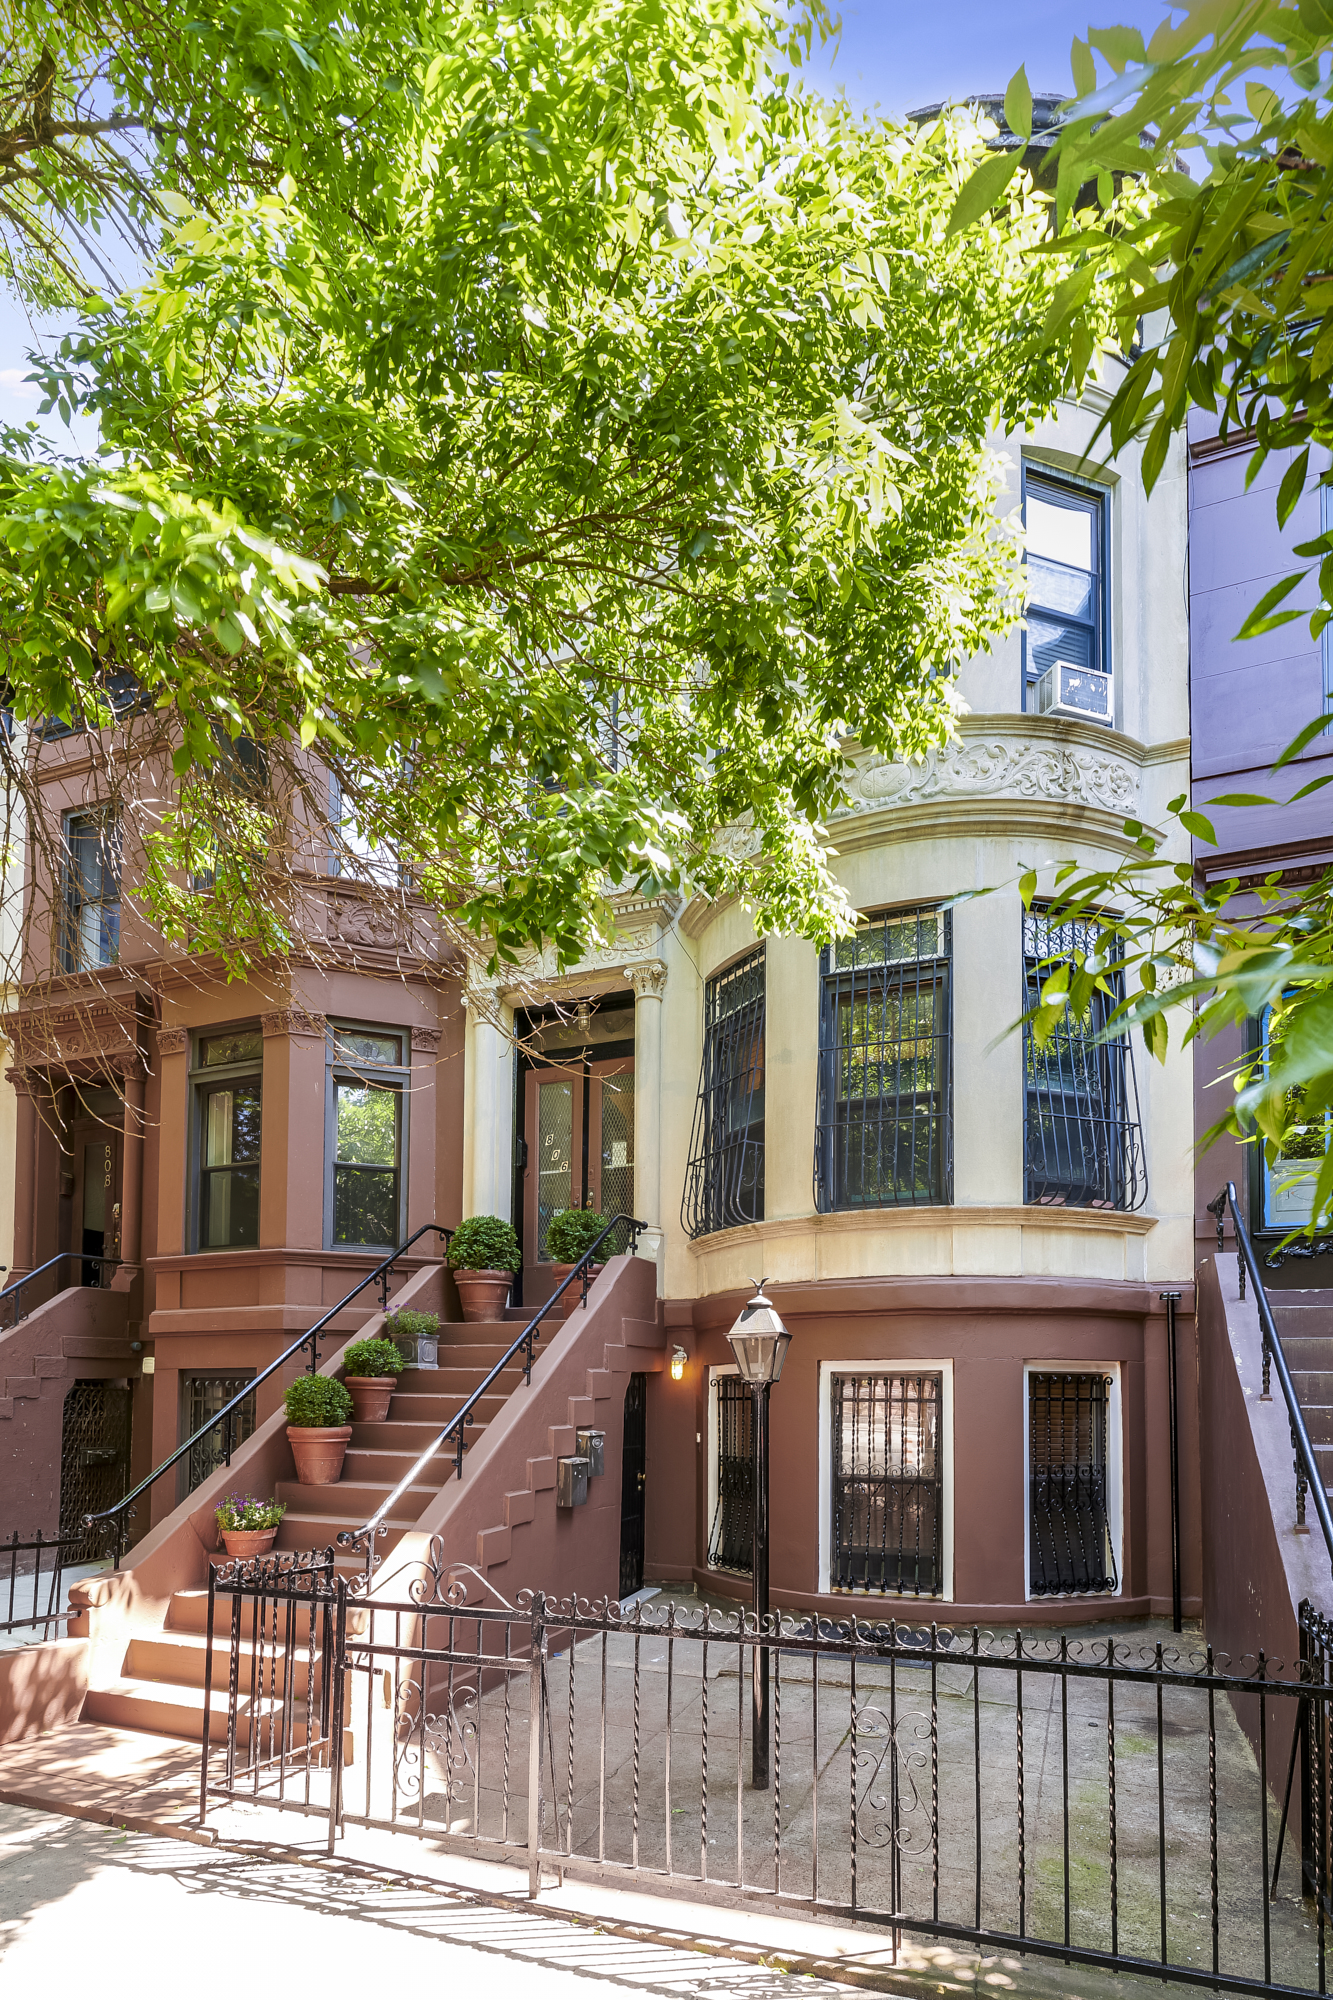 806 lincoln place - $1,820,000 - Crown Heights